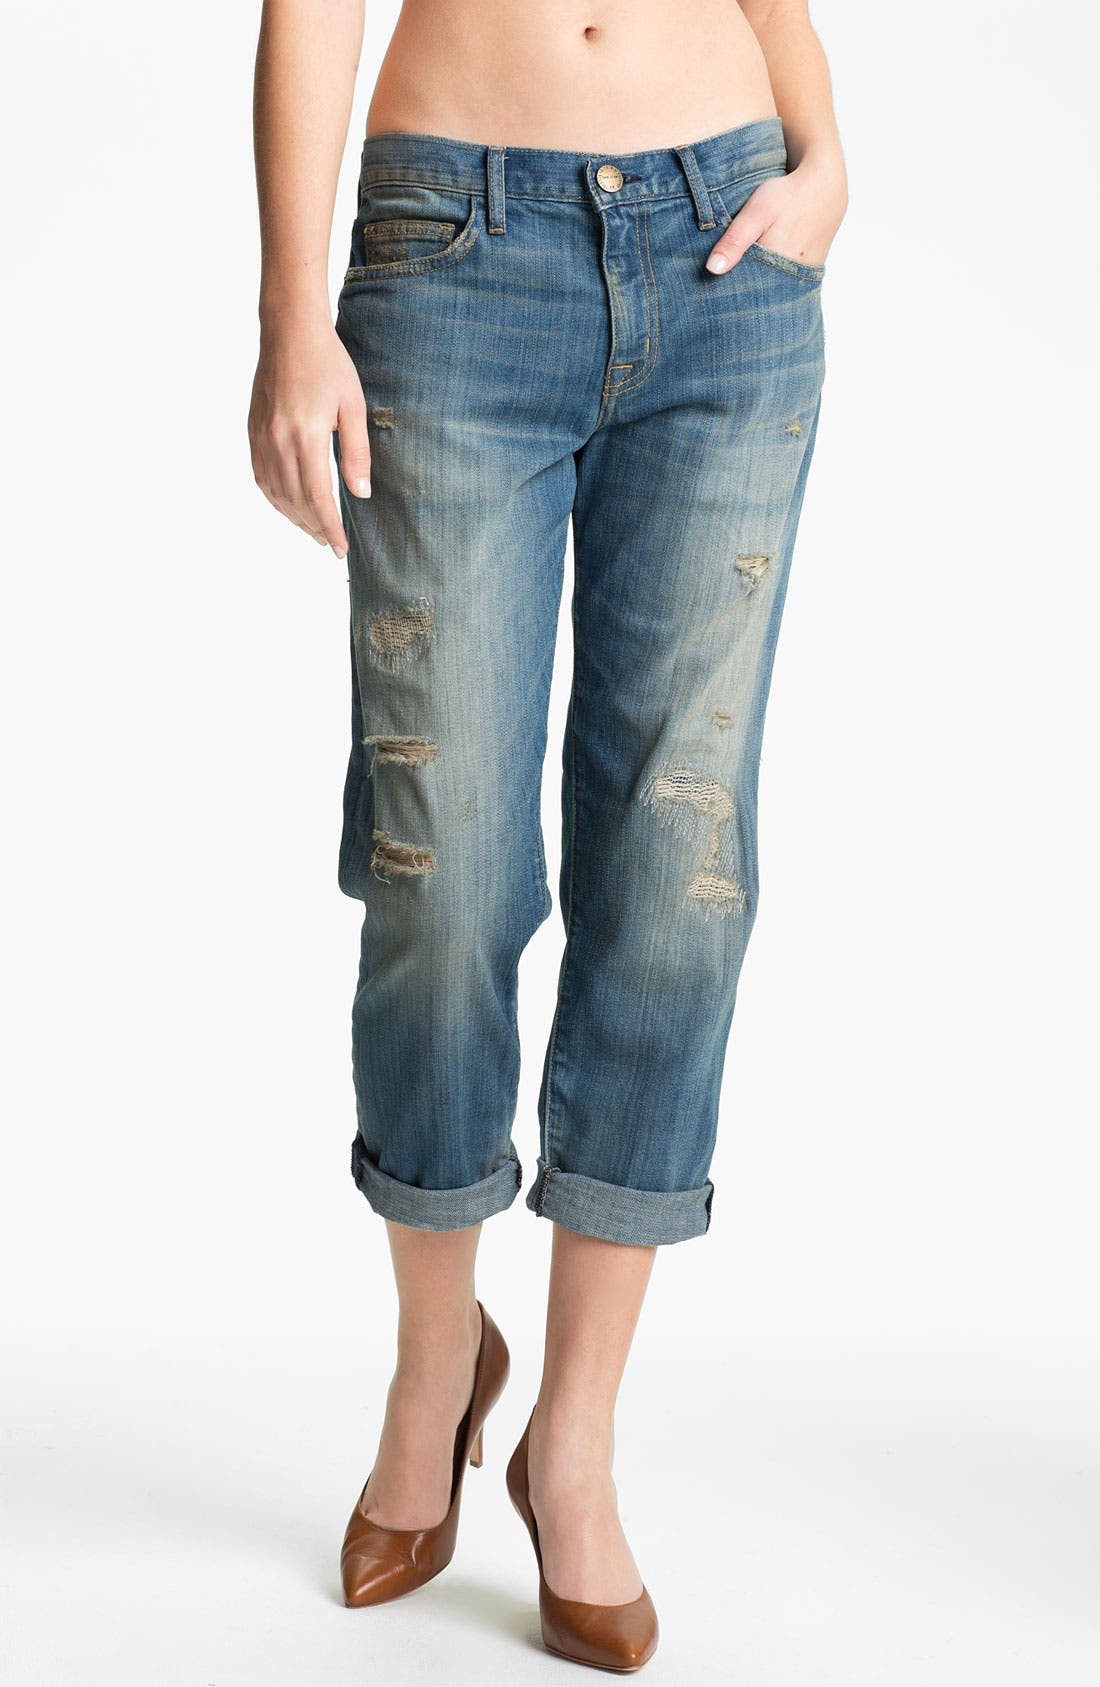 Main Image - Current/Elliott 'The Boyfriend Jean' Stretch Jeans (Panhandle with Repair)